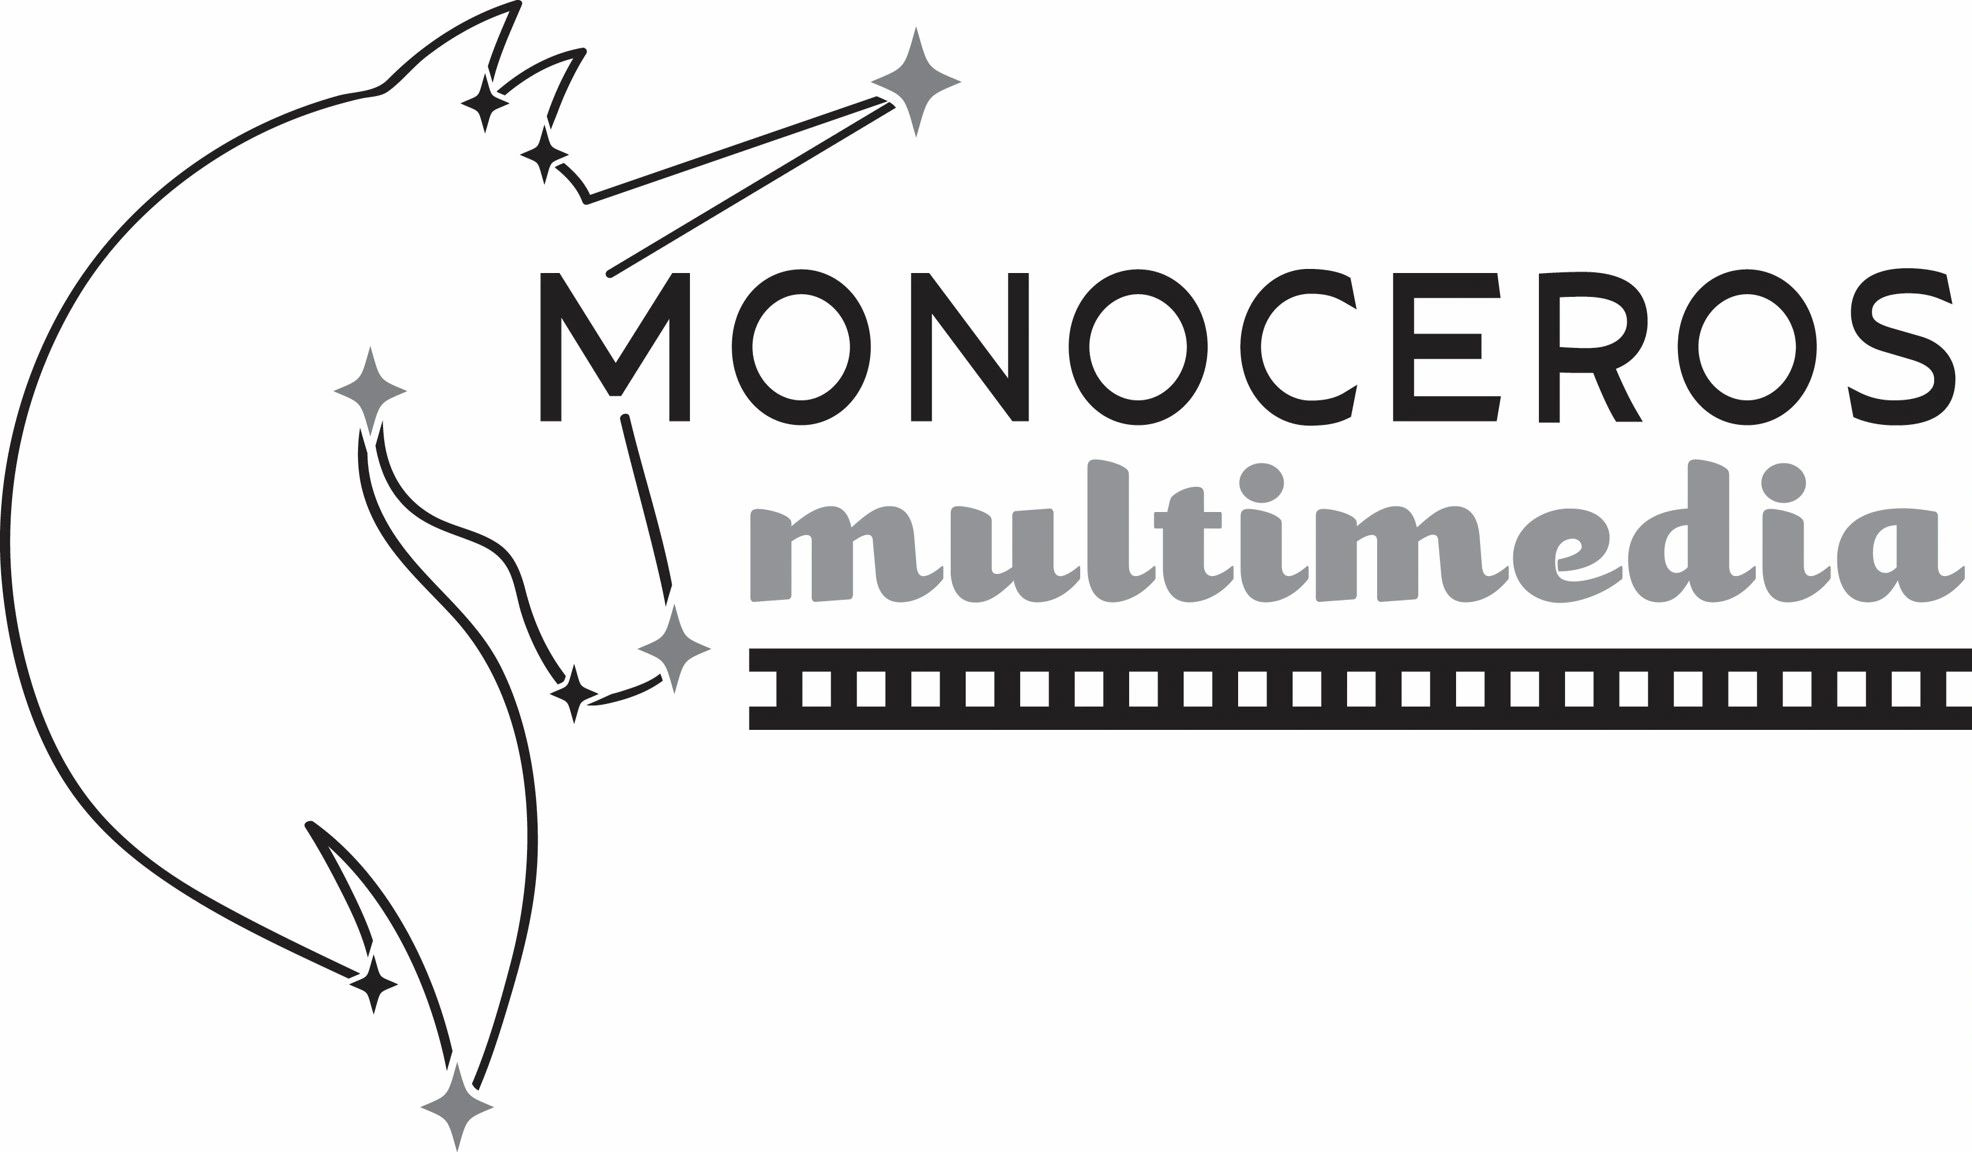 Monoceros Multimedia - Inspired by the Stars